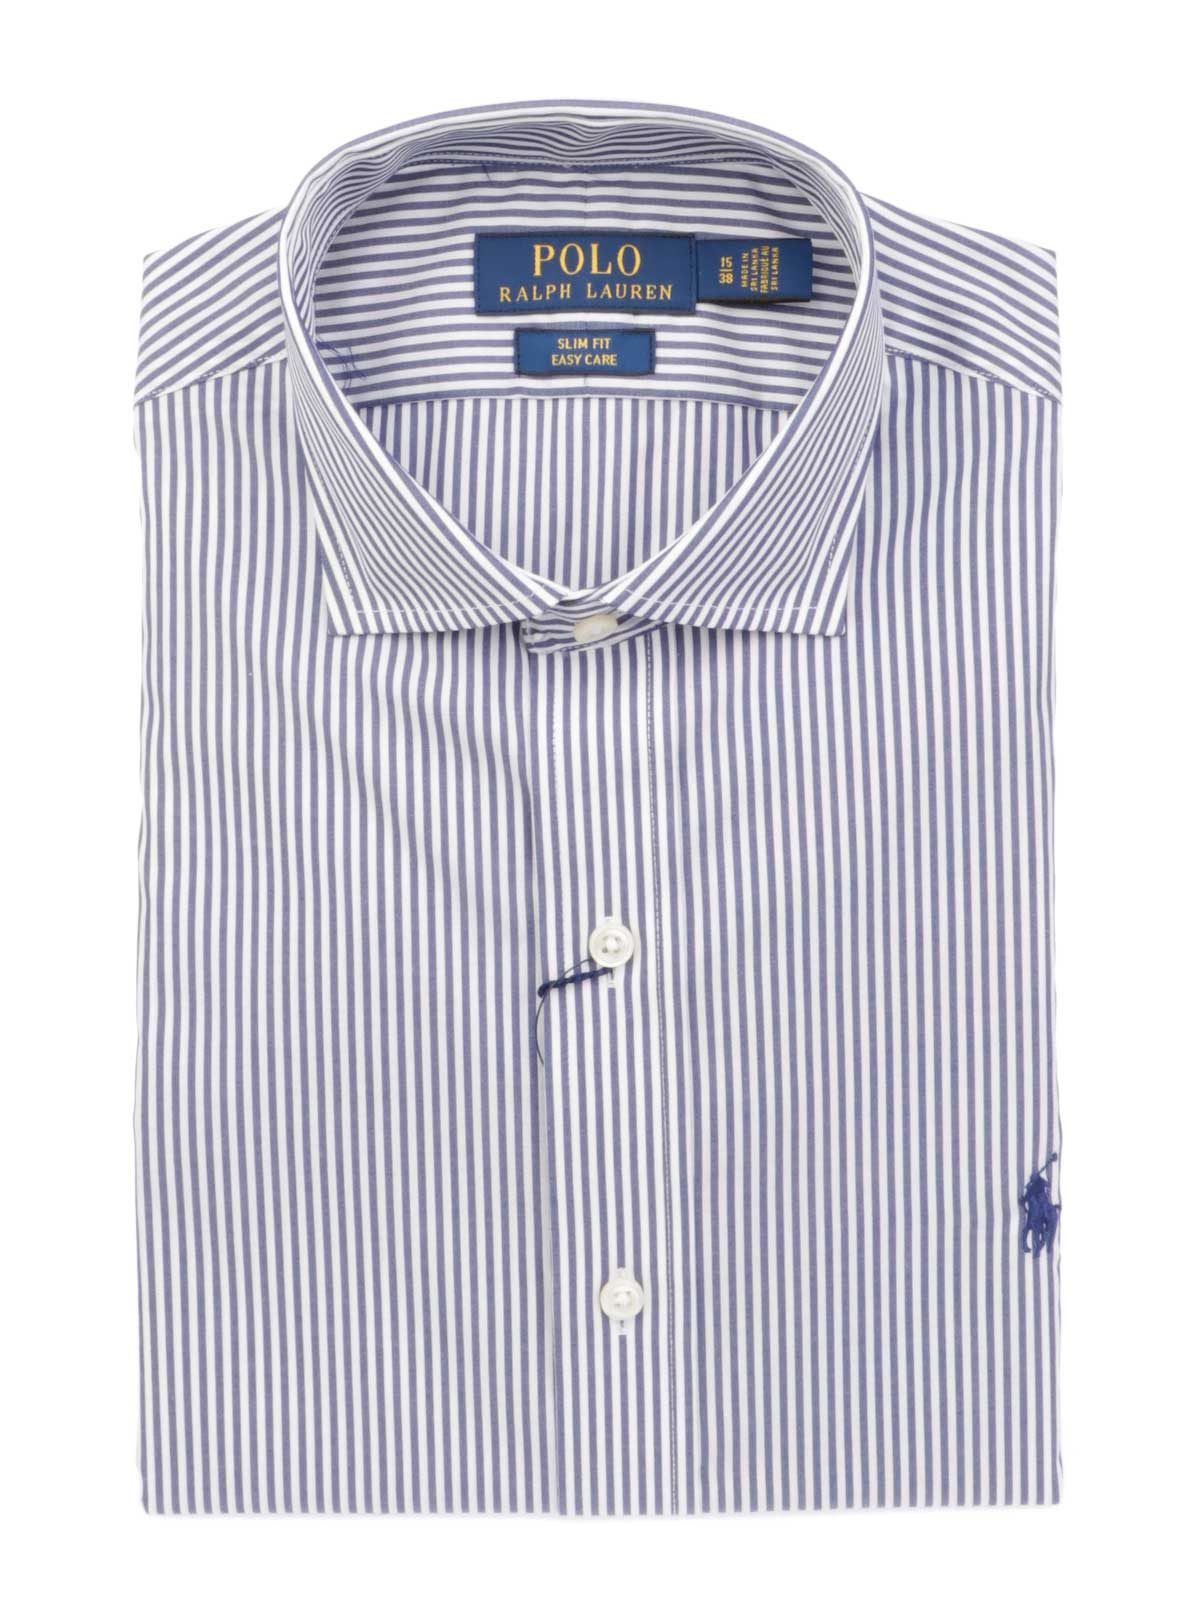 competitive price 6f863 e5cf3 POLO RALPH LAUREN Men's Striped Shirt